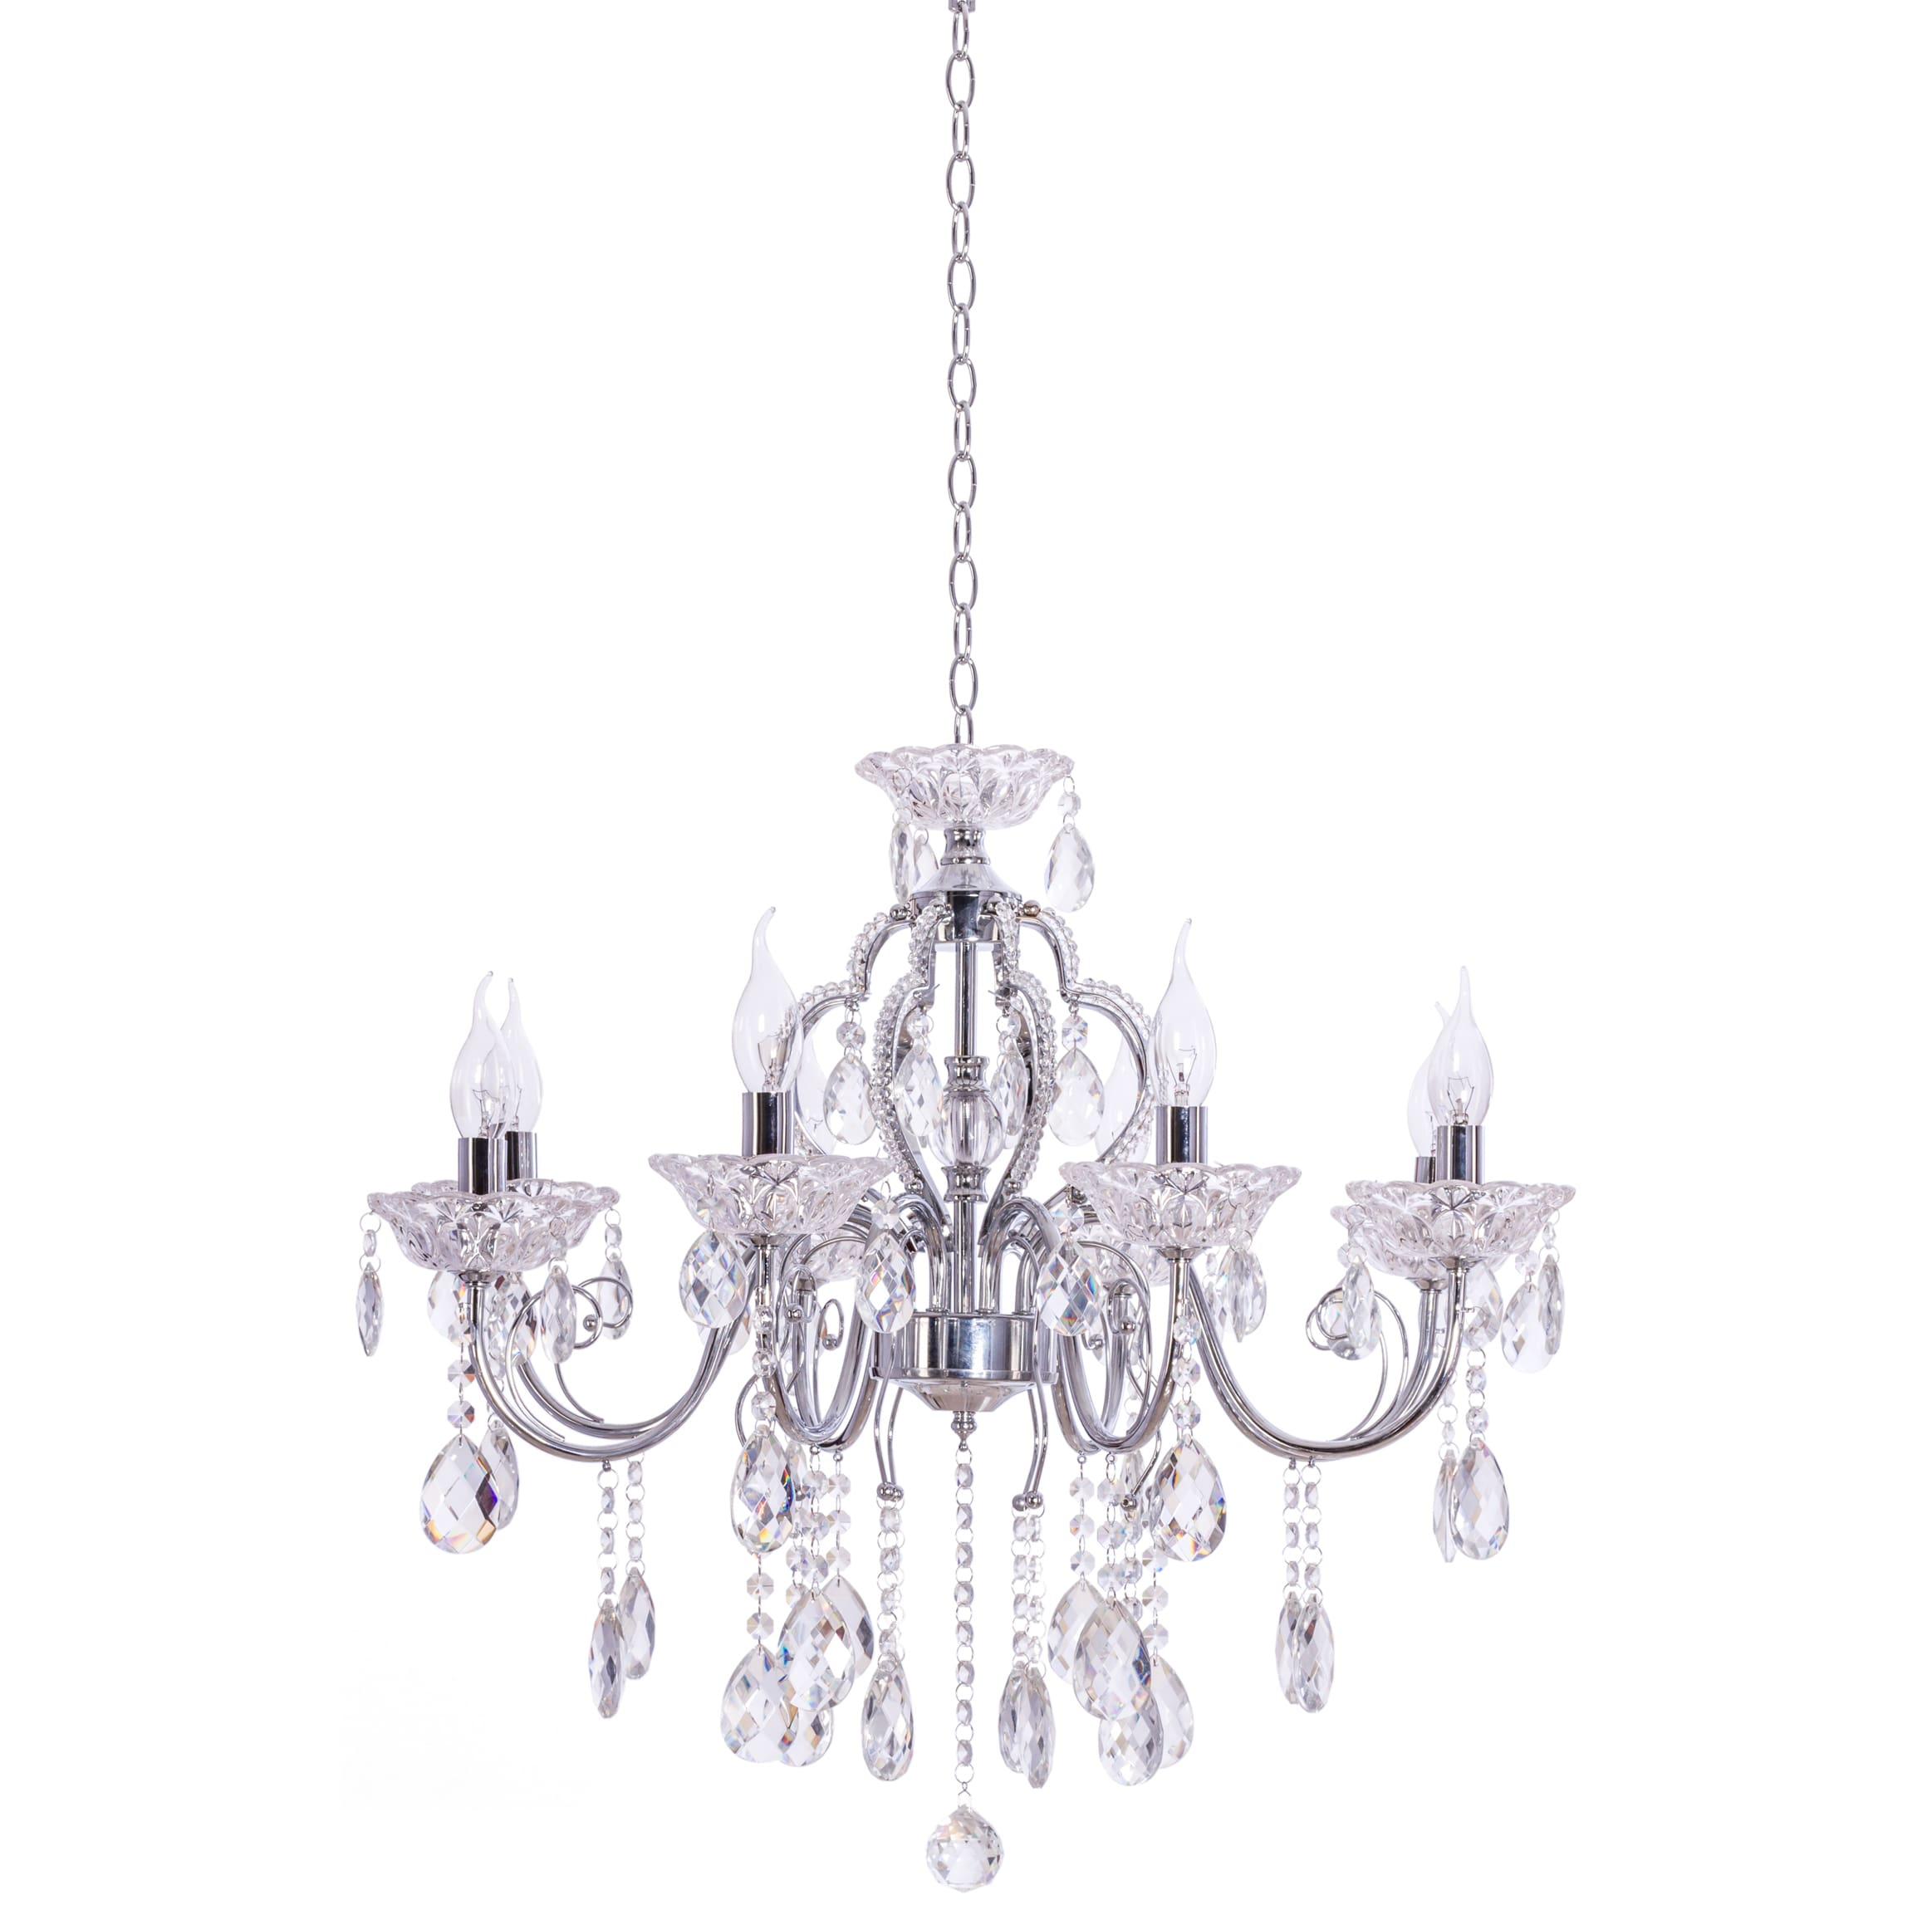 landing_Echo_chandelier_tall.jpg